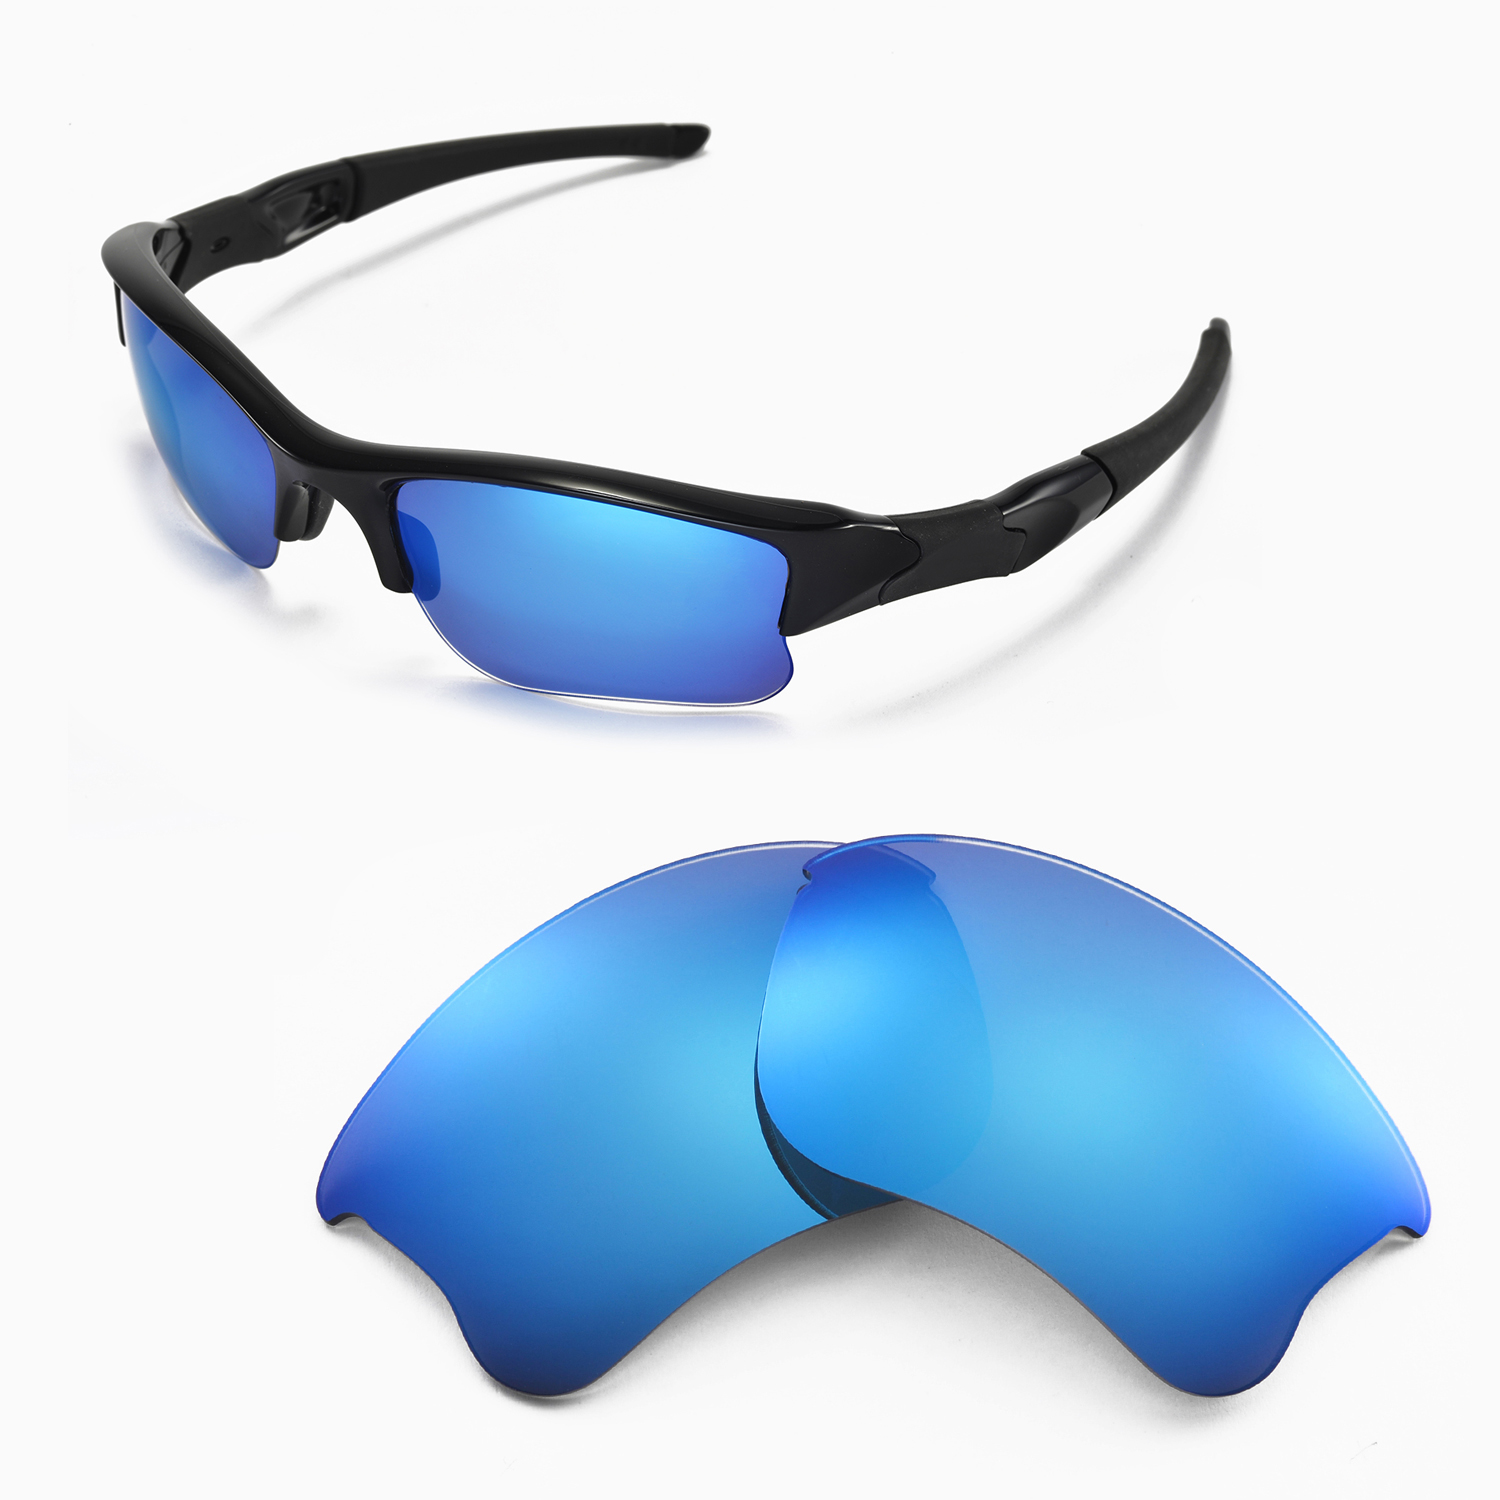 28031ce8463 Details about Walleva Ice Blue ISARC Polarized Replacement Lenses For Oakley  Flak Jacket XLJ